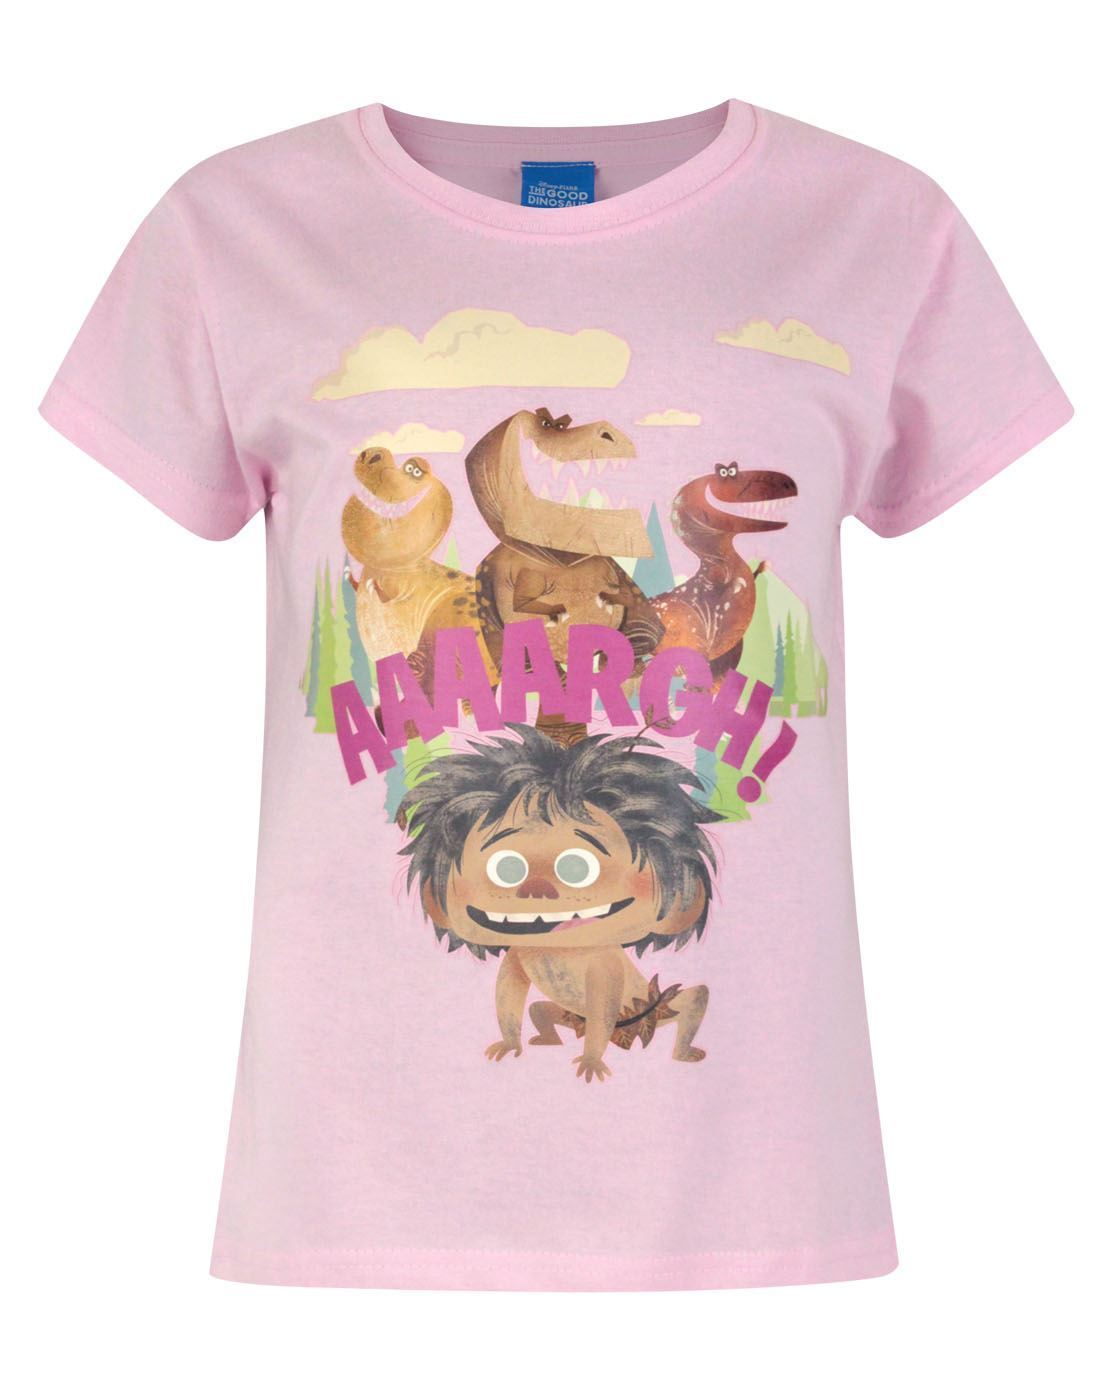 The Good Dinosaur Girl's T-Shirt